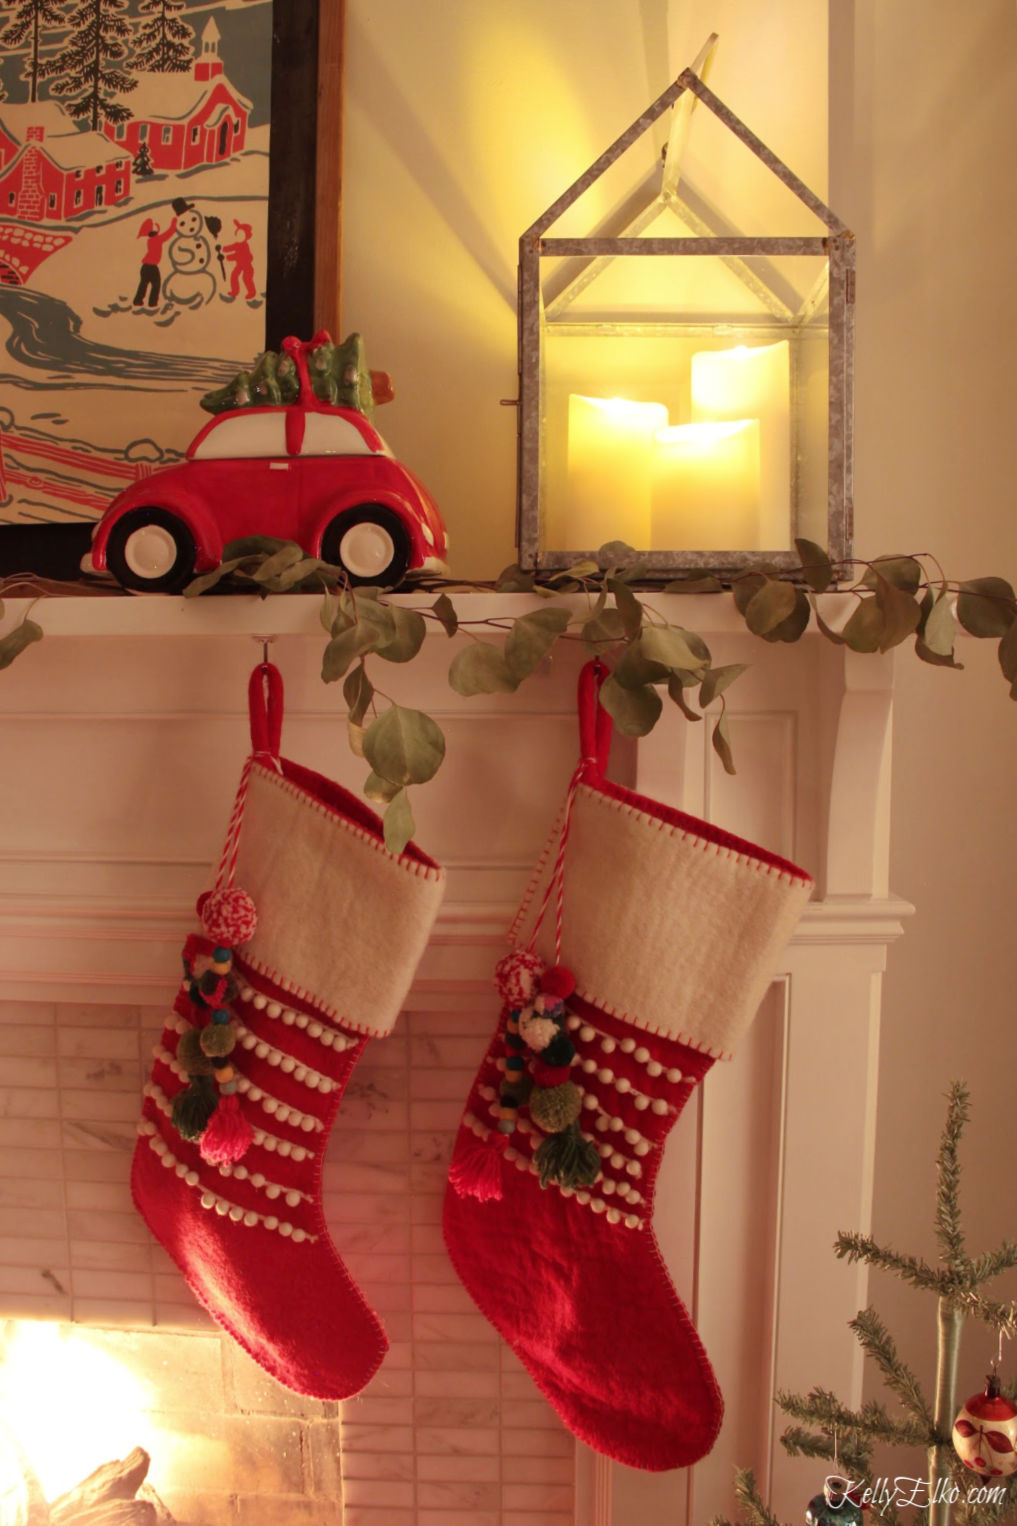 Christmas Night Tour - love the lanterns with candles and the pom pom stockings on the mantel kellyelko.com #christmasdecor #christmasmantel #christmasstockings #vintagechristmas #colorfulchristmas #farmhousechristmas #kellyelko